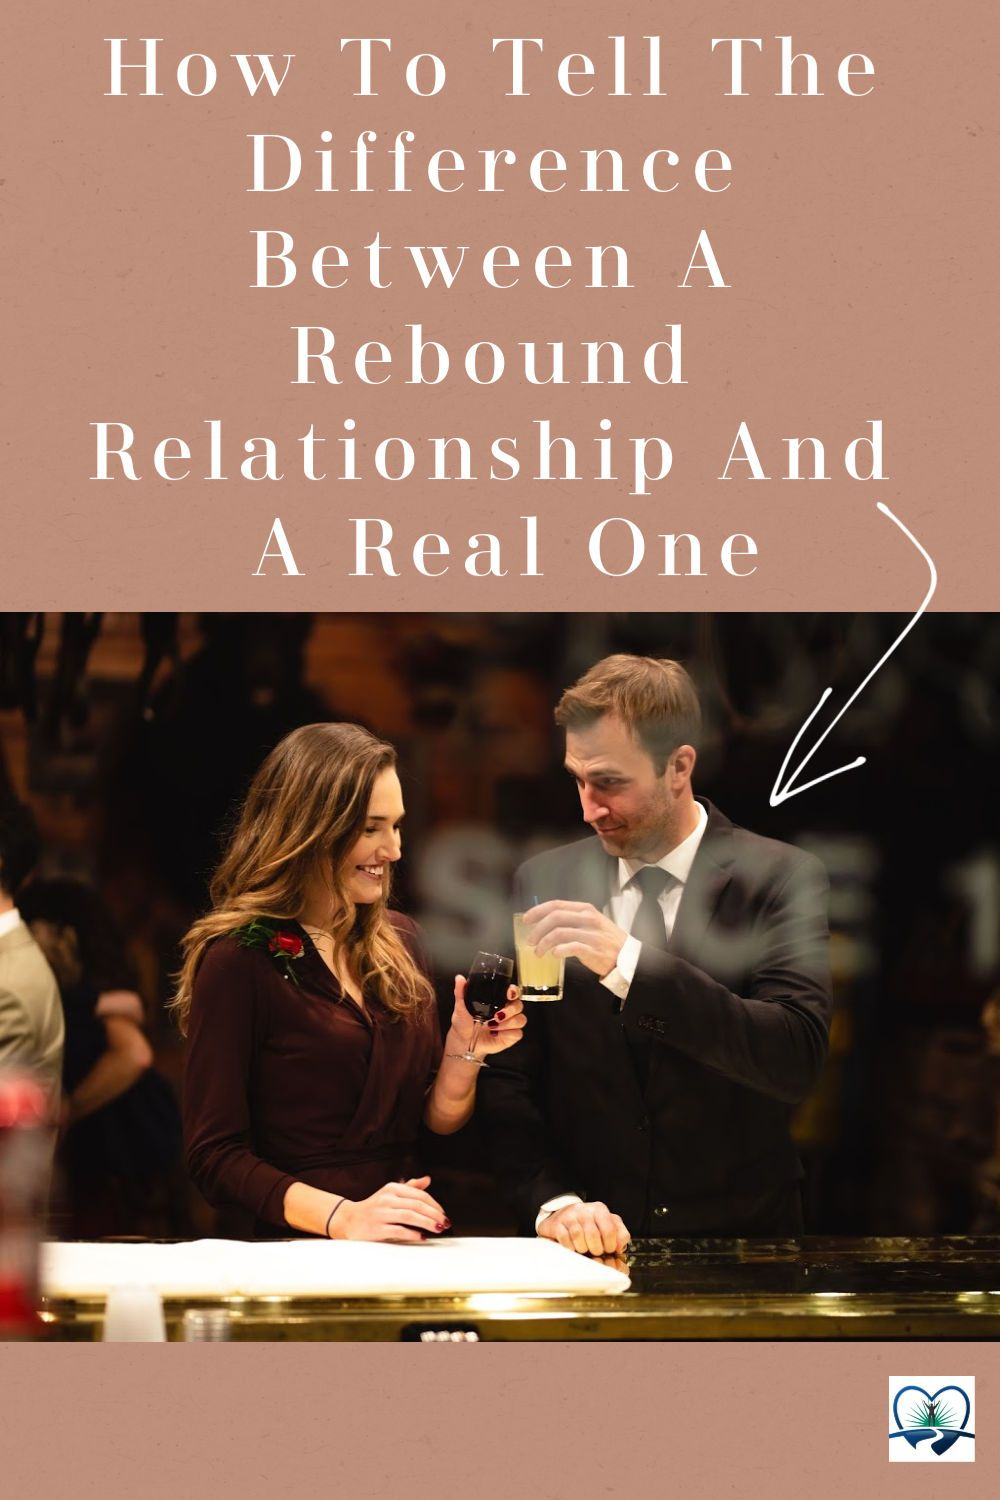 How To Tell The Difference Between A Rebound Relationship